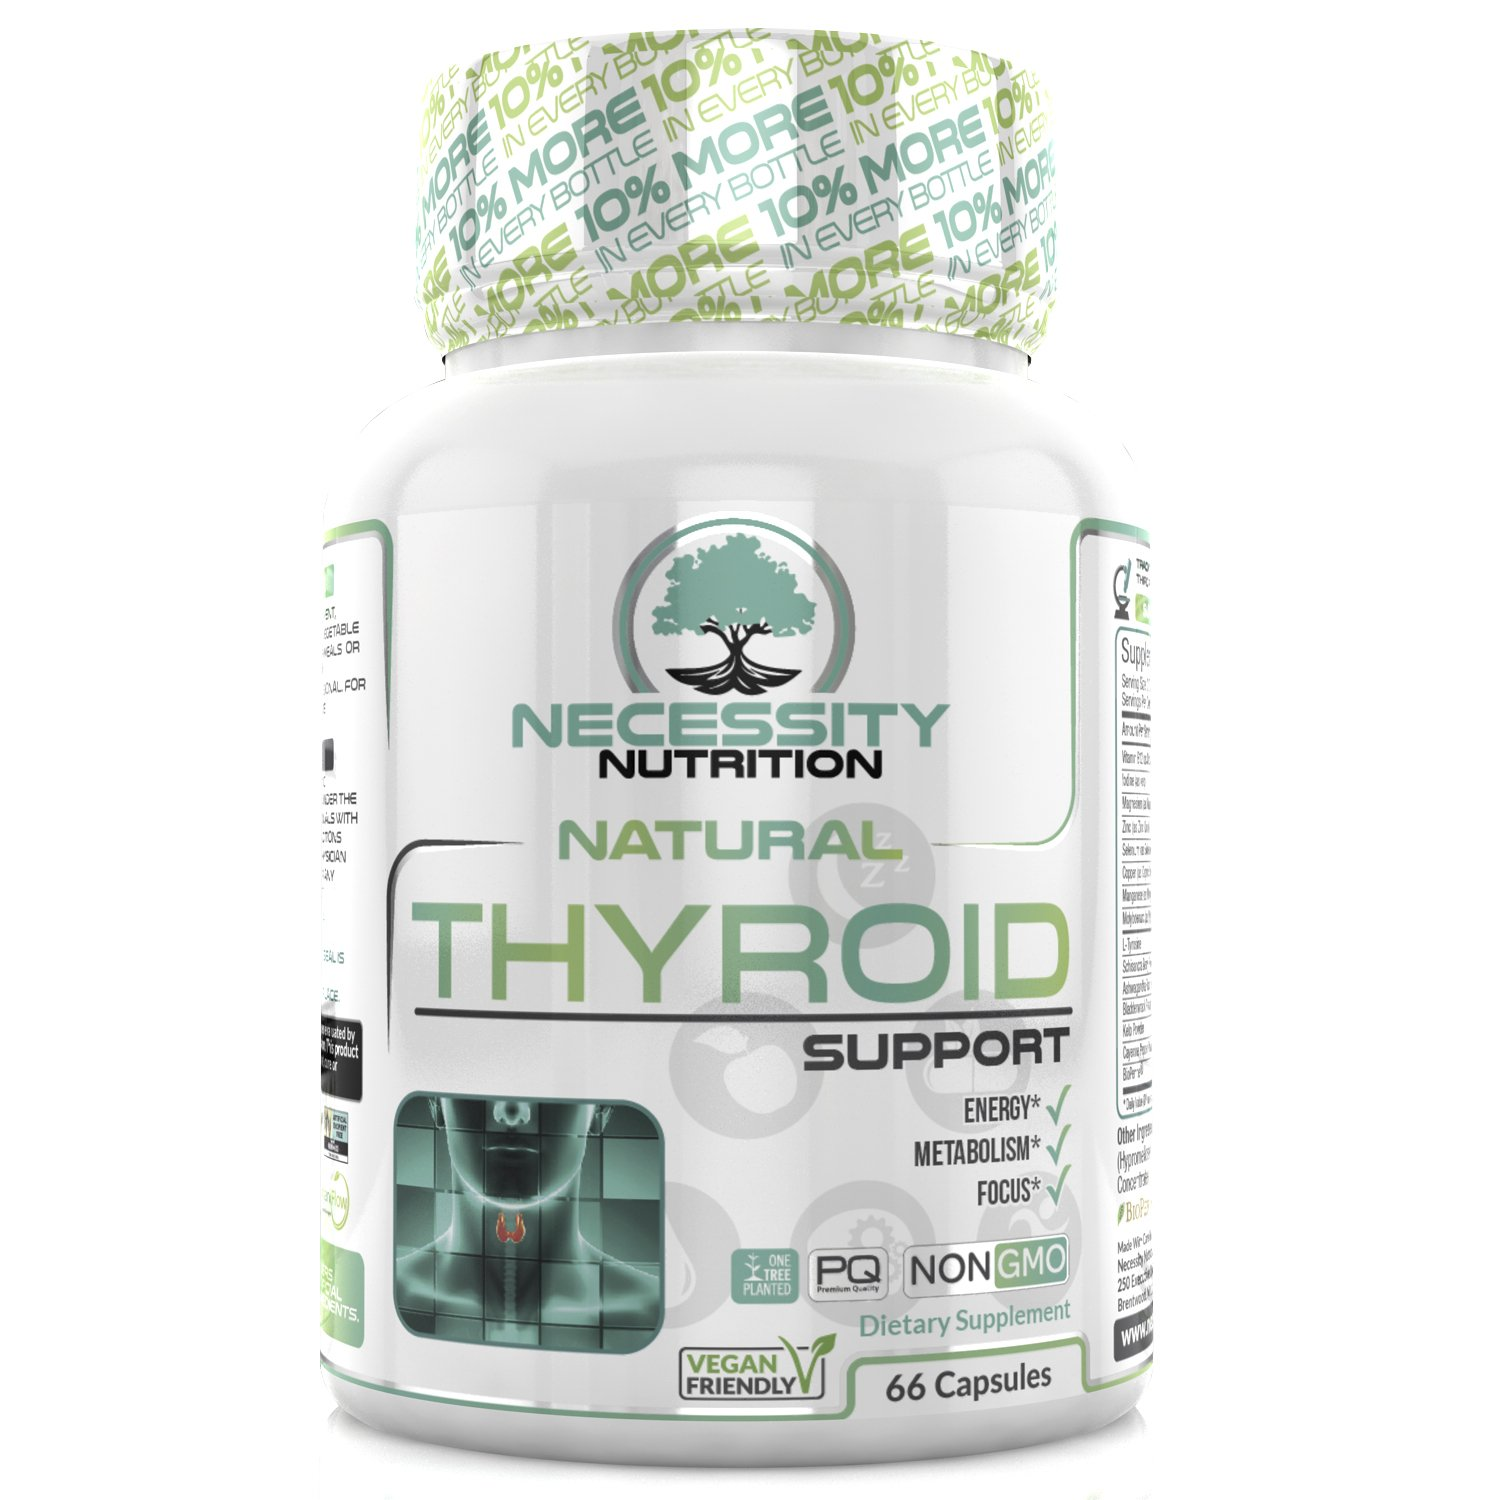 Thyroid Support Supplement Complex 66 Capsules - Boost Energy, Metabolism, Brain Function & Focus | Natural Weight Loss Formula | Non GMO - Contains Iodine, Vitamin B12, Zinc, Ashwagandha and Selenium by Necessity Nutrition